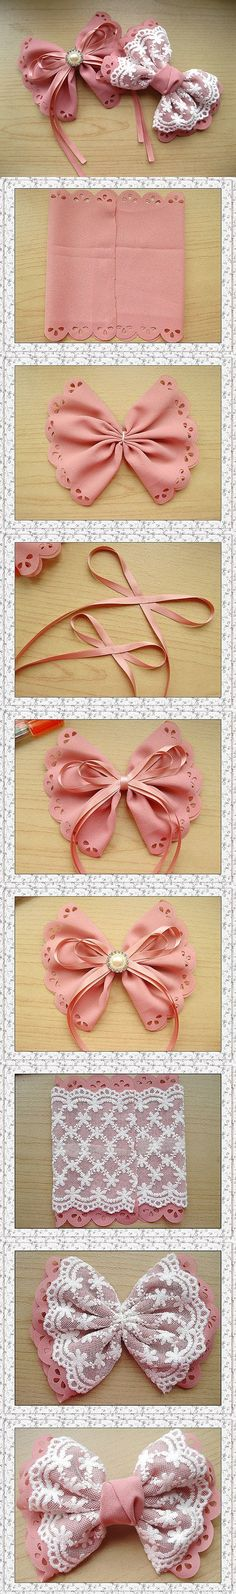 cute DIY bow tutorial